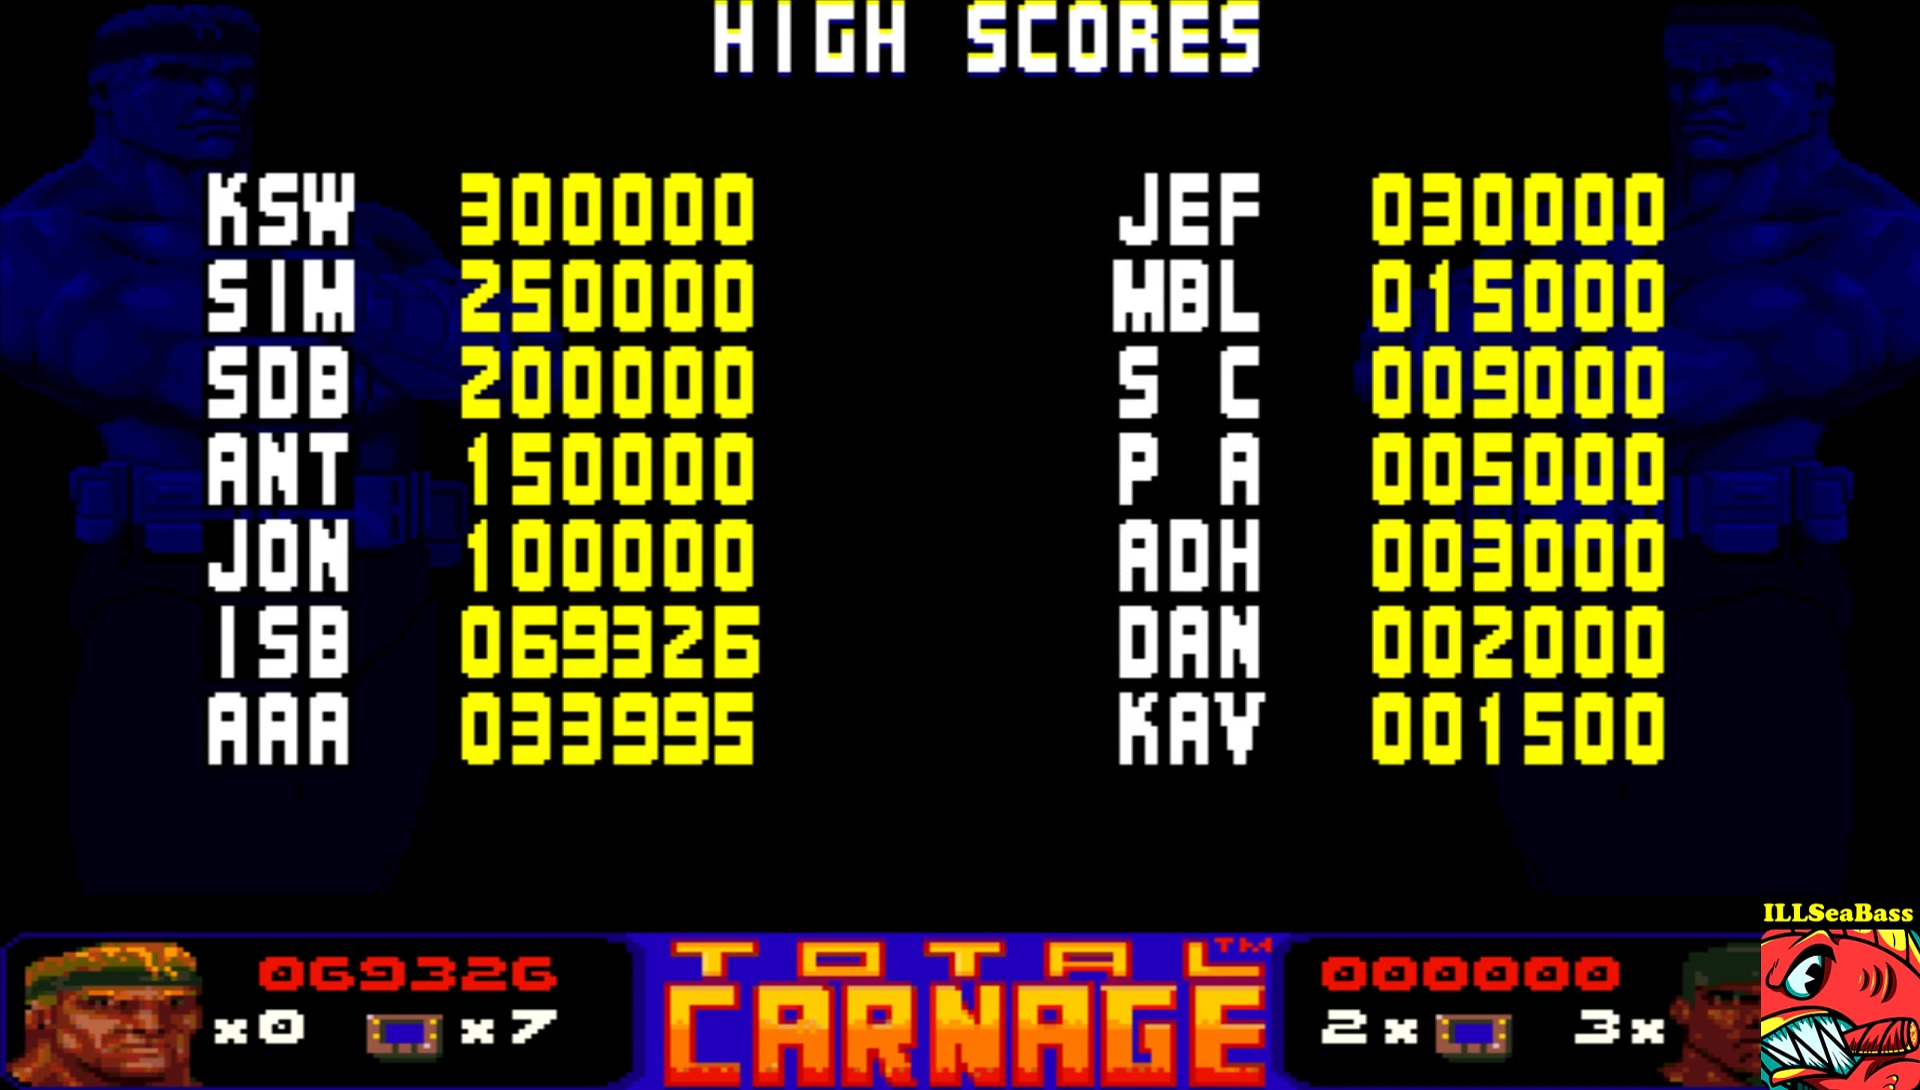 ILLSeaBass: Total Carnage [Hard] (Amiga Emulated) 69,326 points on 2017-05-29 00:08:49